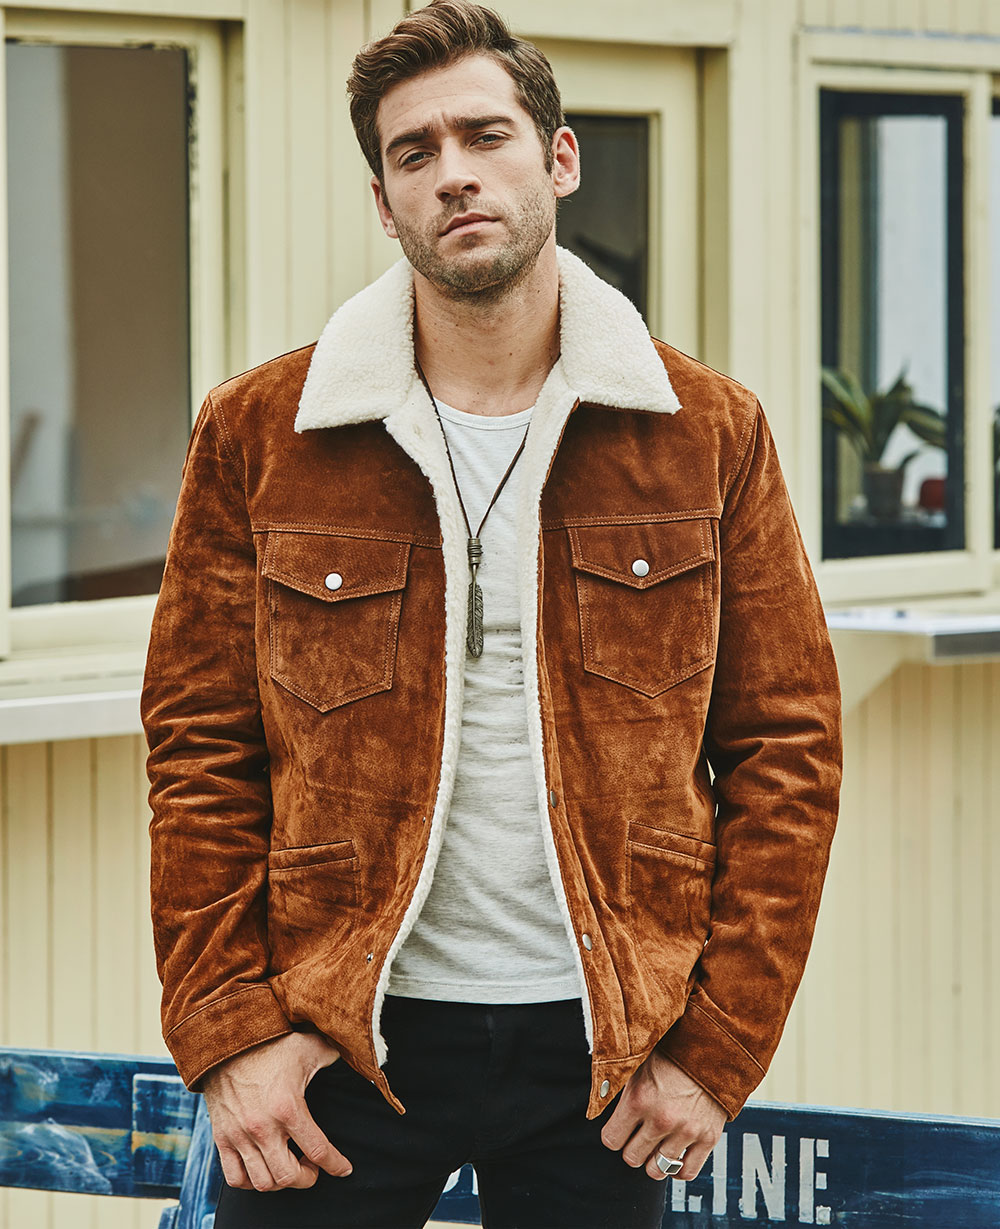 Hdb627811062747808b485785d21551315 FLAVOR New Men's Real Leather Jacket Genuine Leather With Faux Shearling Warm Coat Men